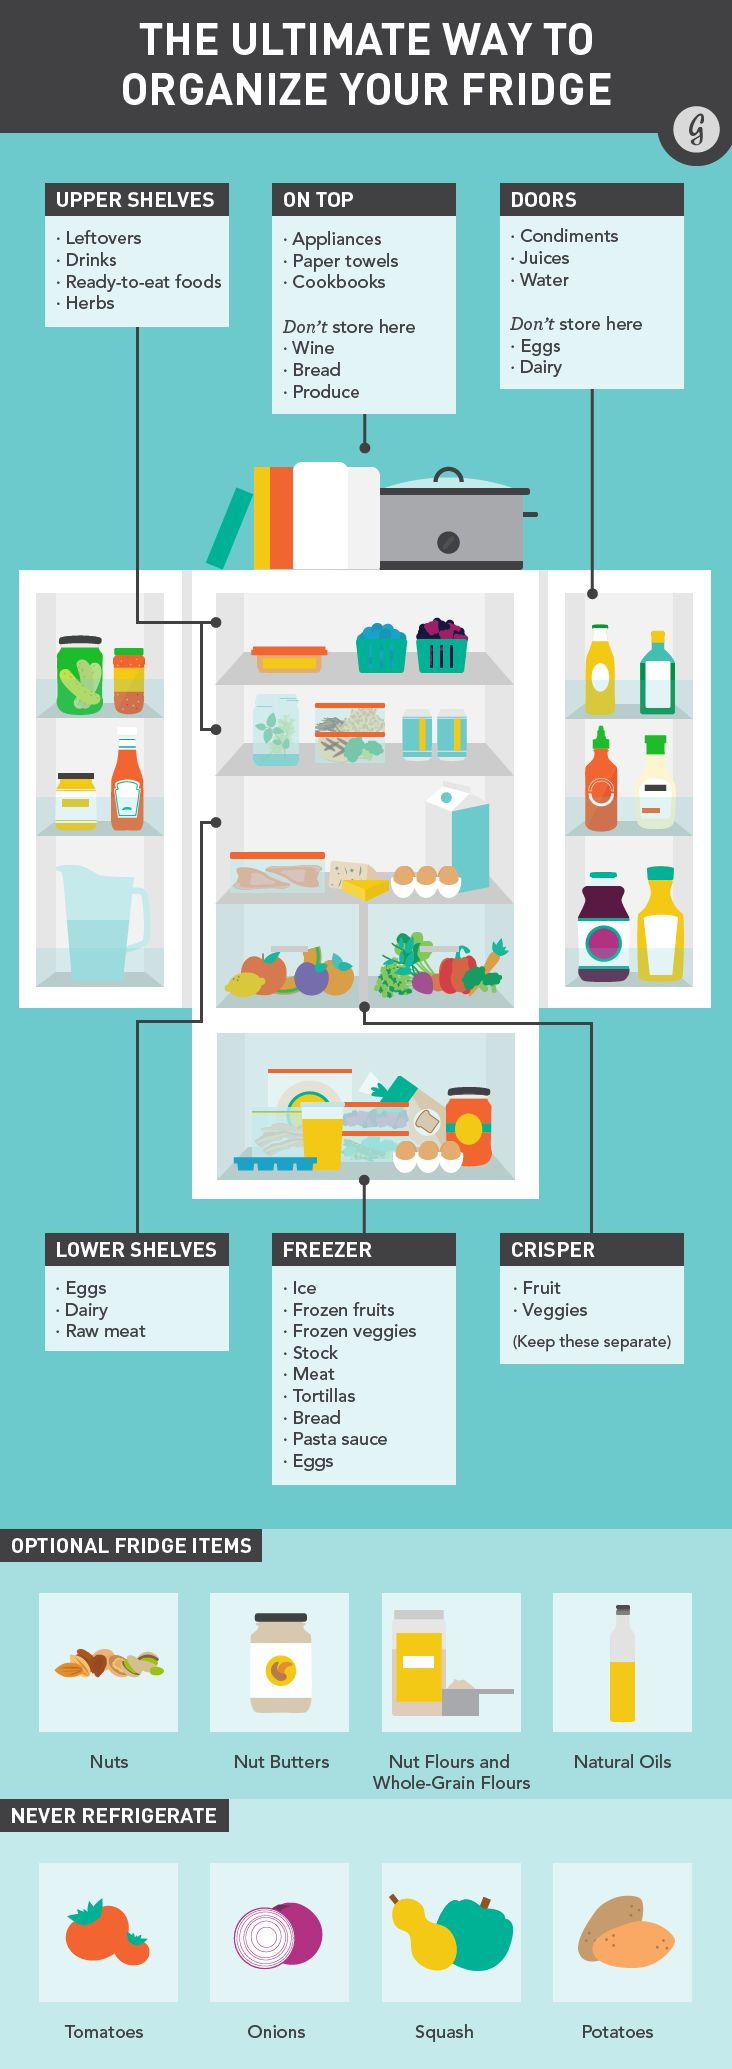 How to Organize Your Fridge to Keep Food Fresher, Longer (and Cut Your Energy Bill) http://greatist.com/eat/ultimate-way-organize-your-fridge